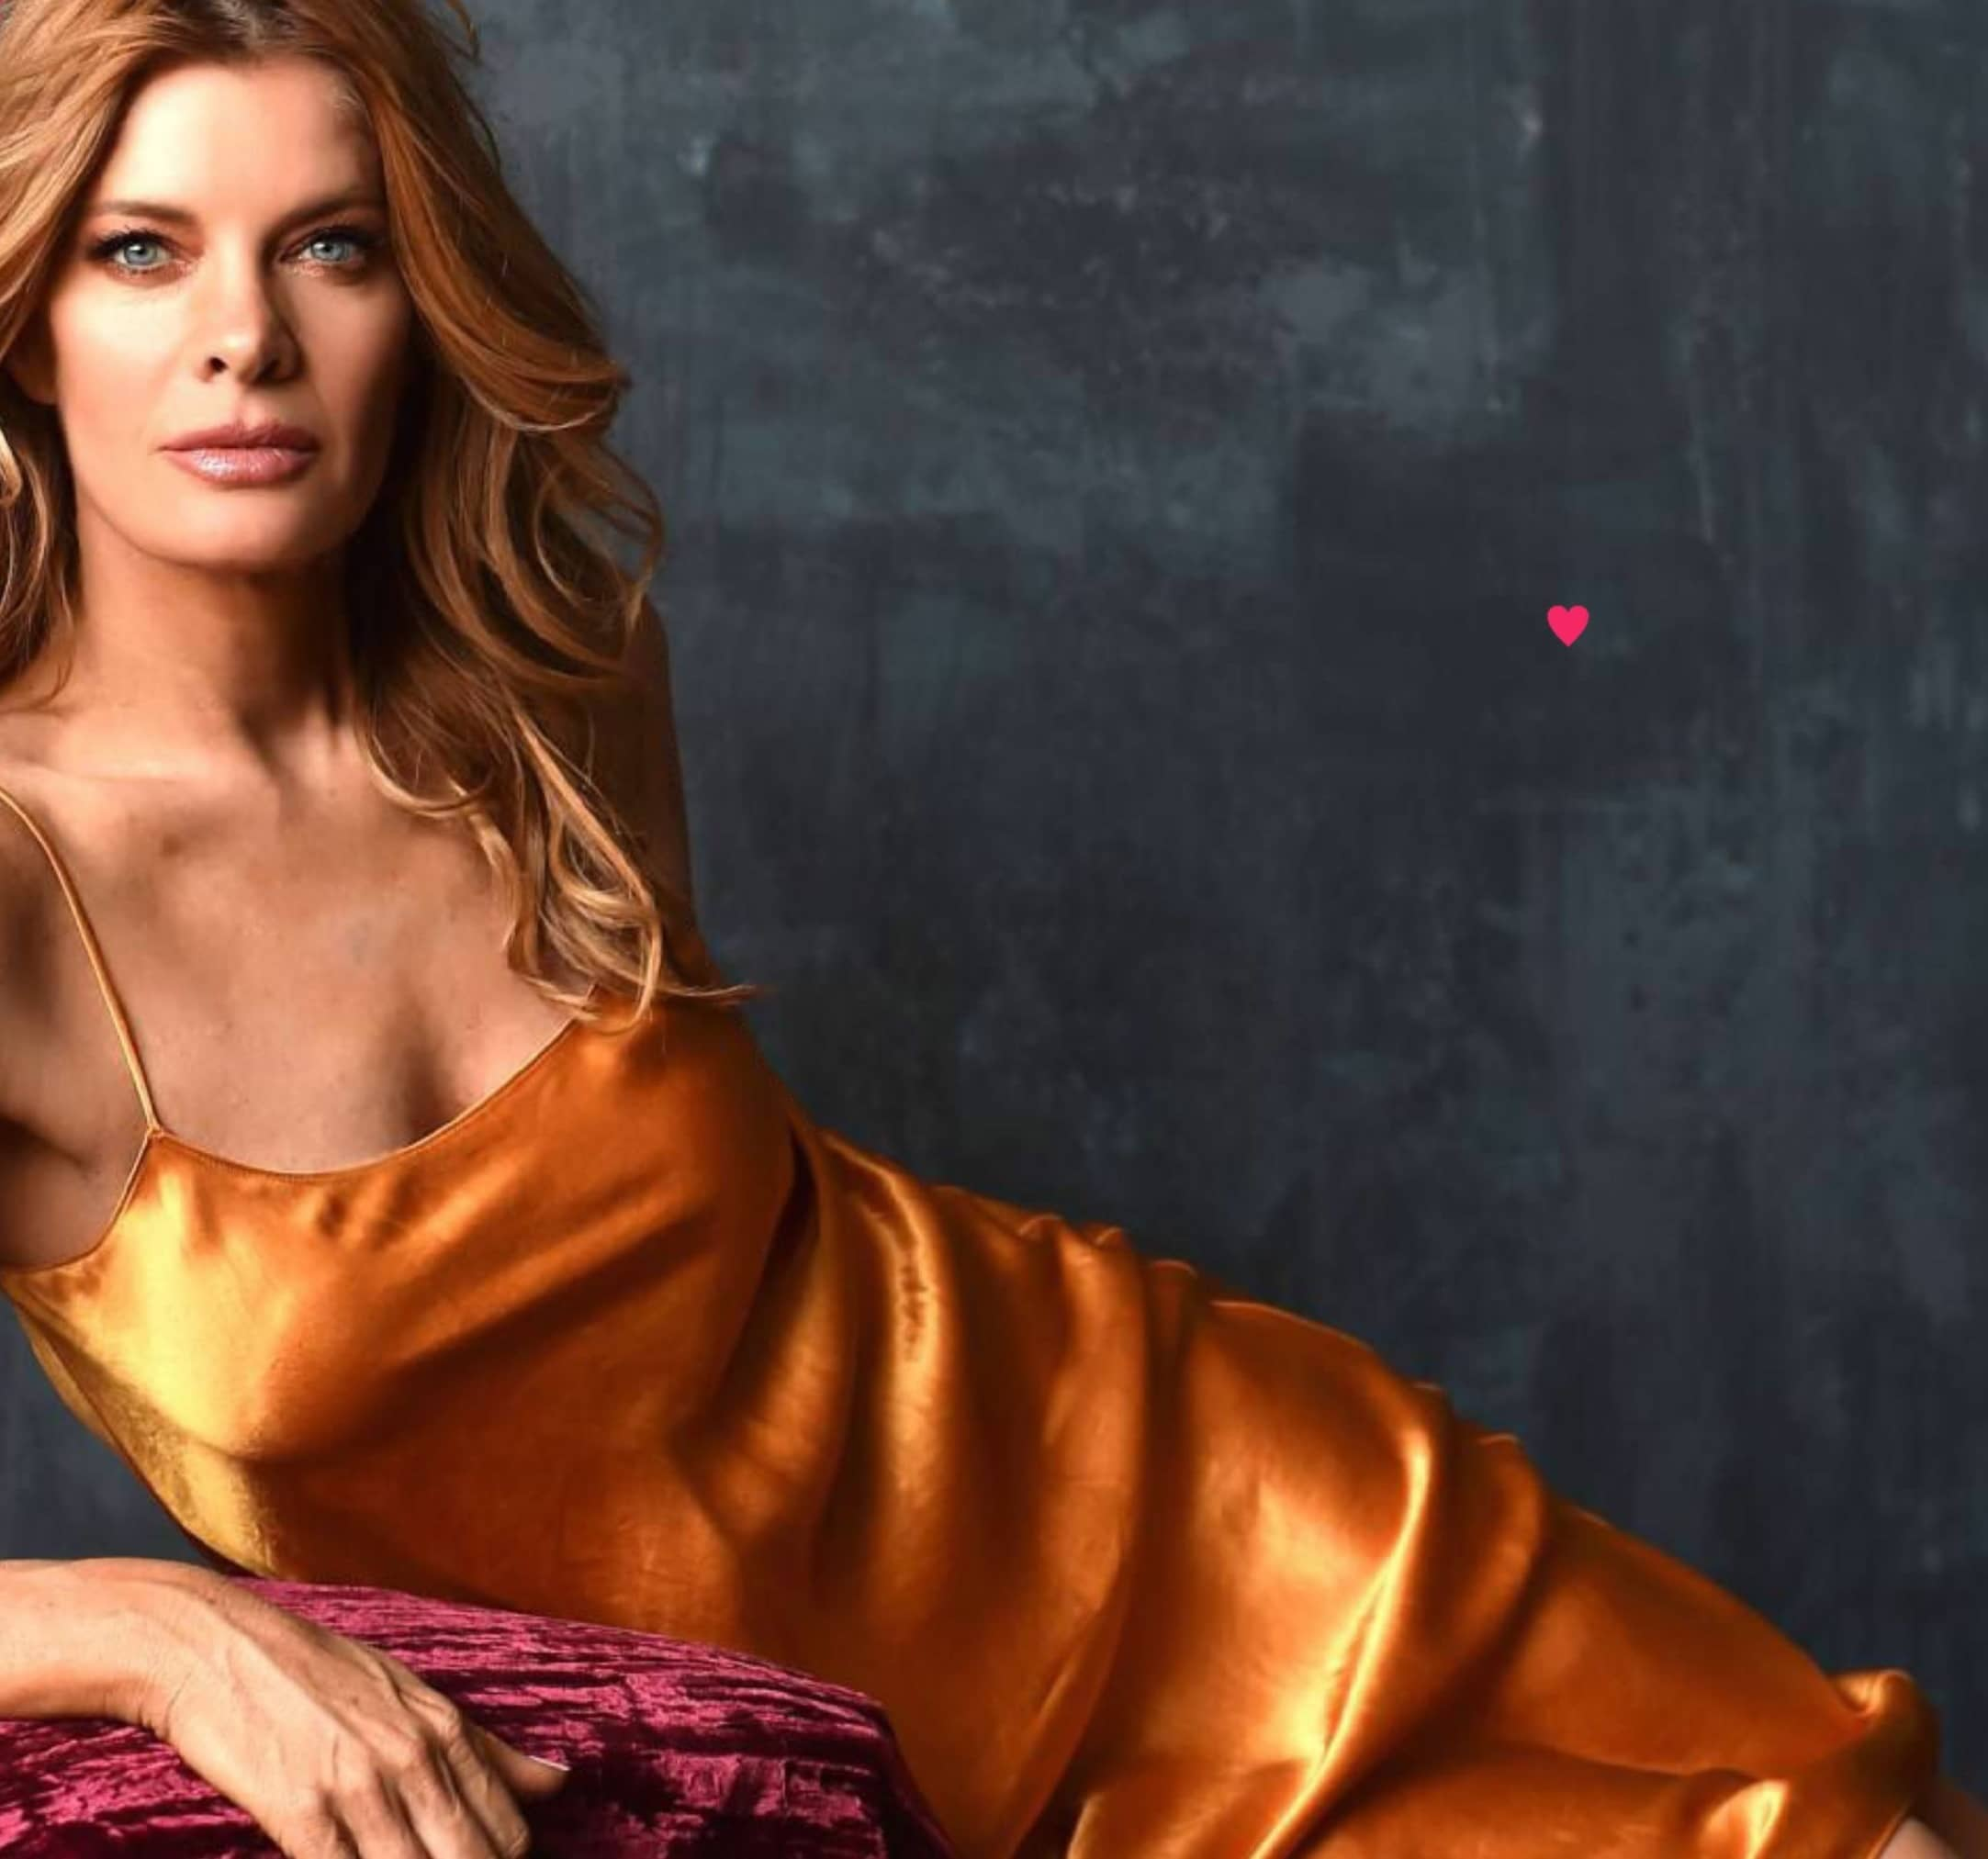 Actress Michelle Stafford On Taking Care of Yourself Inside Out